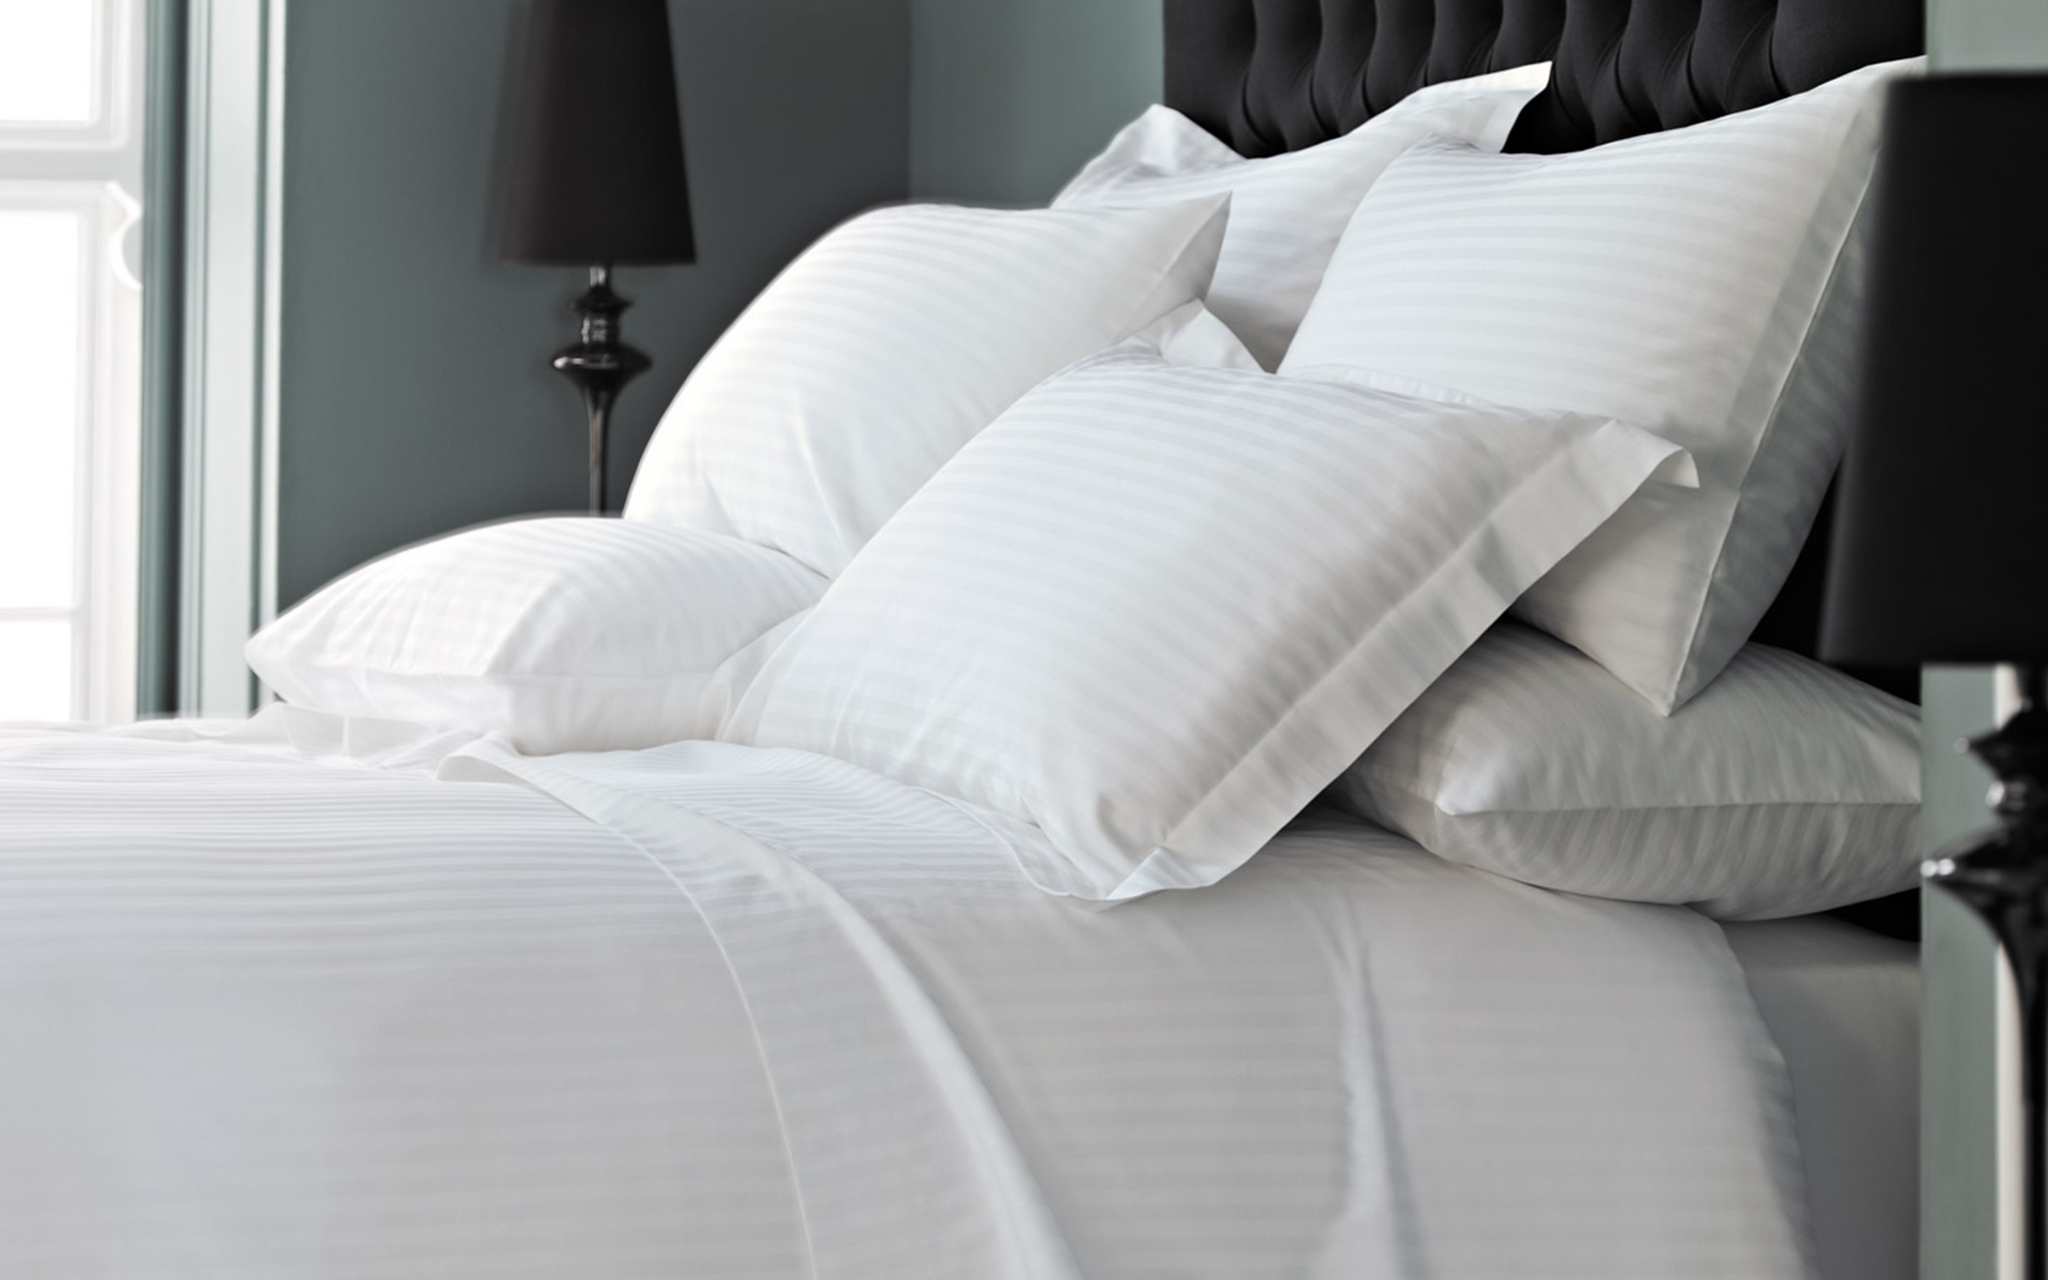 hotel bedding trends promote wellness, cleanliness | hotel management